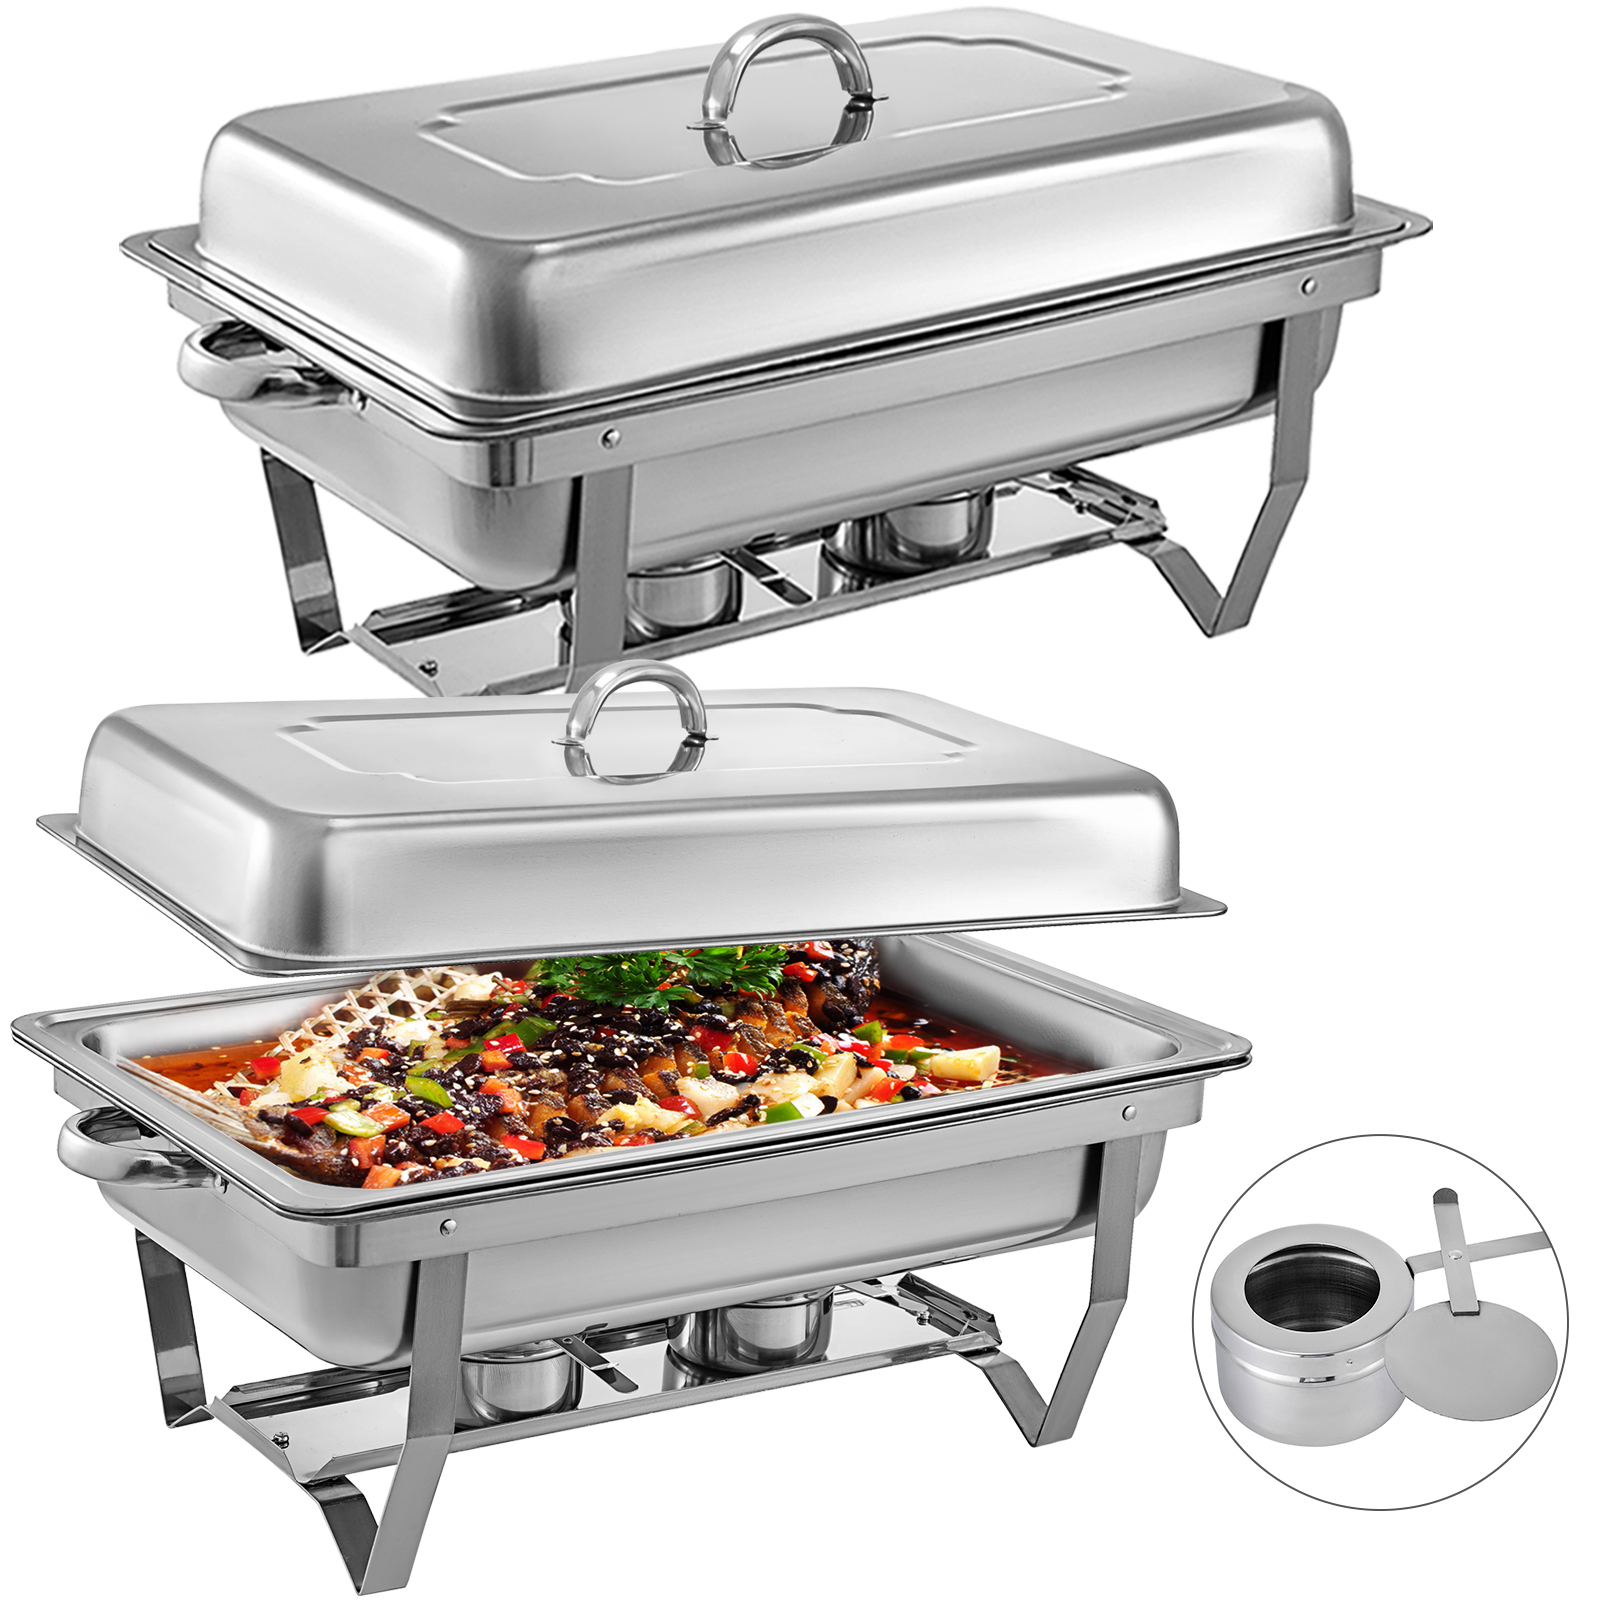 thumbnail 13 - Multi-Stainless-Steel-Chafing-Dish-Bain-Marie-Bow-Catering-Dish-Hotpot-Server